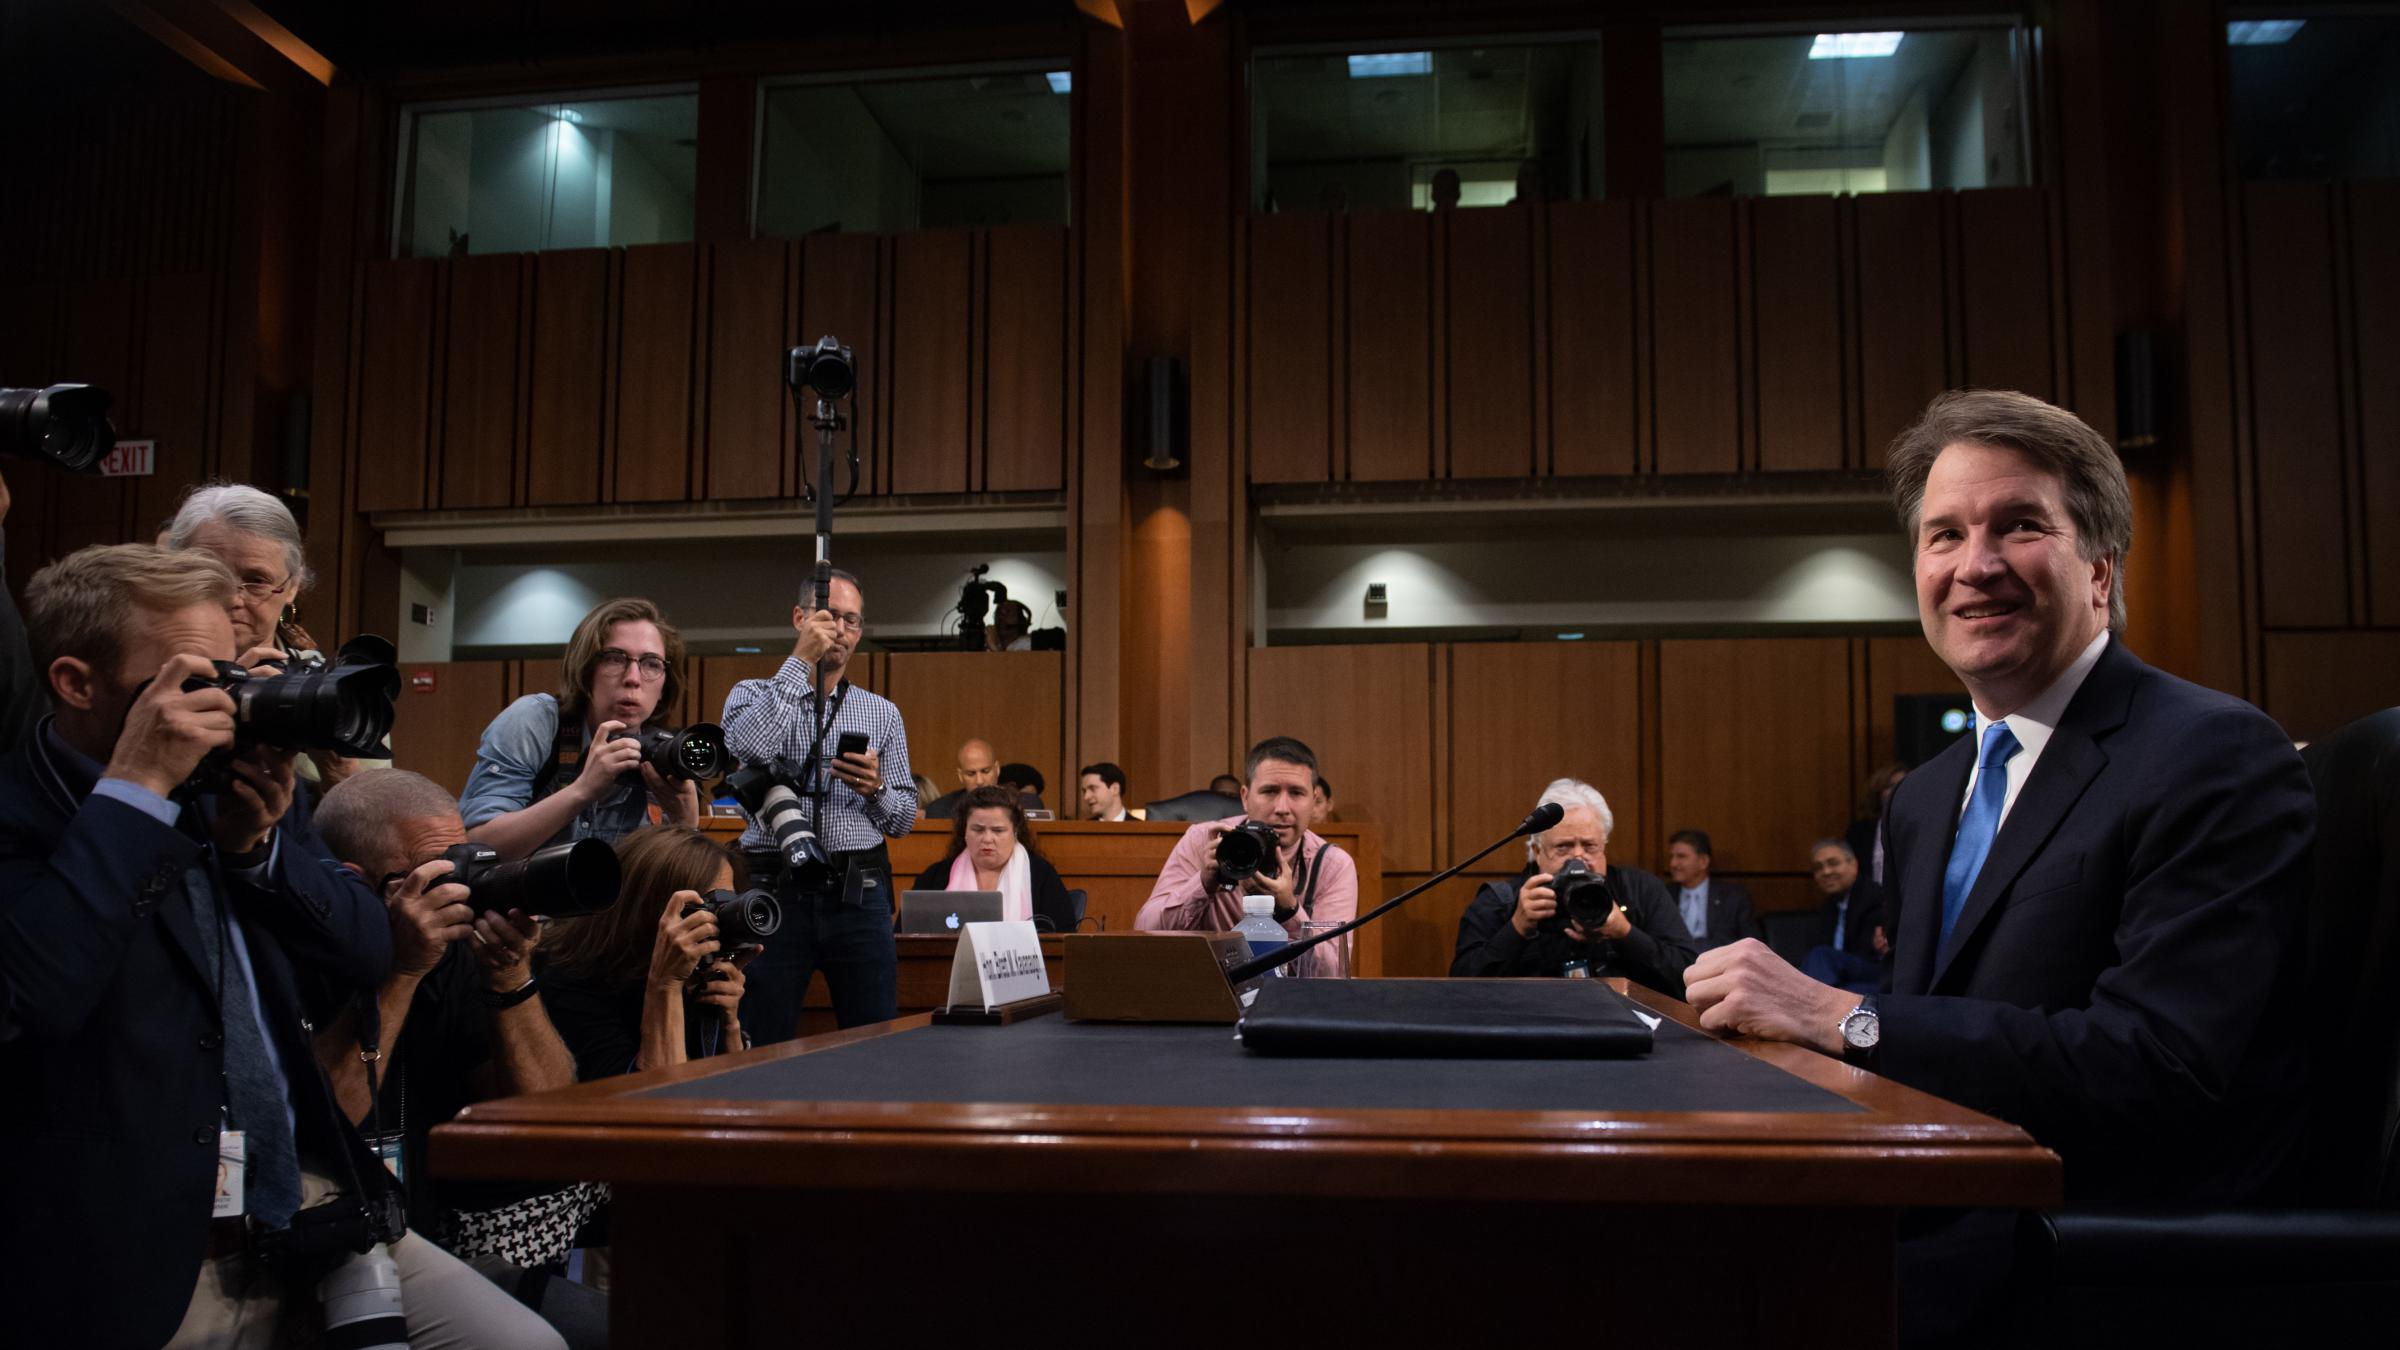 Kavanaugh Looks On Path To Supreme Court Confirmation After 4 Days Watch And Latest News In Senate Judiciary Committee Judge Brett Arrives Testify During The Second Day Of His Hearings Wednesday